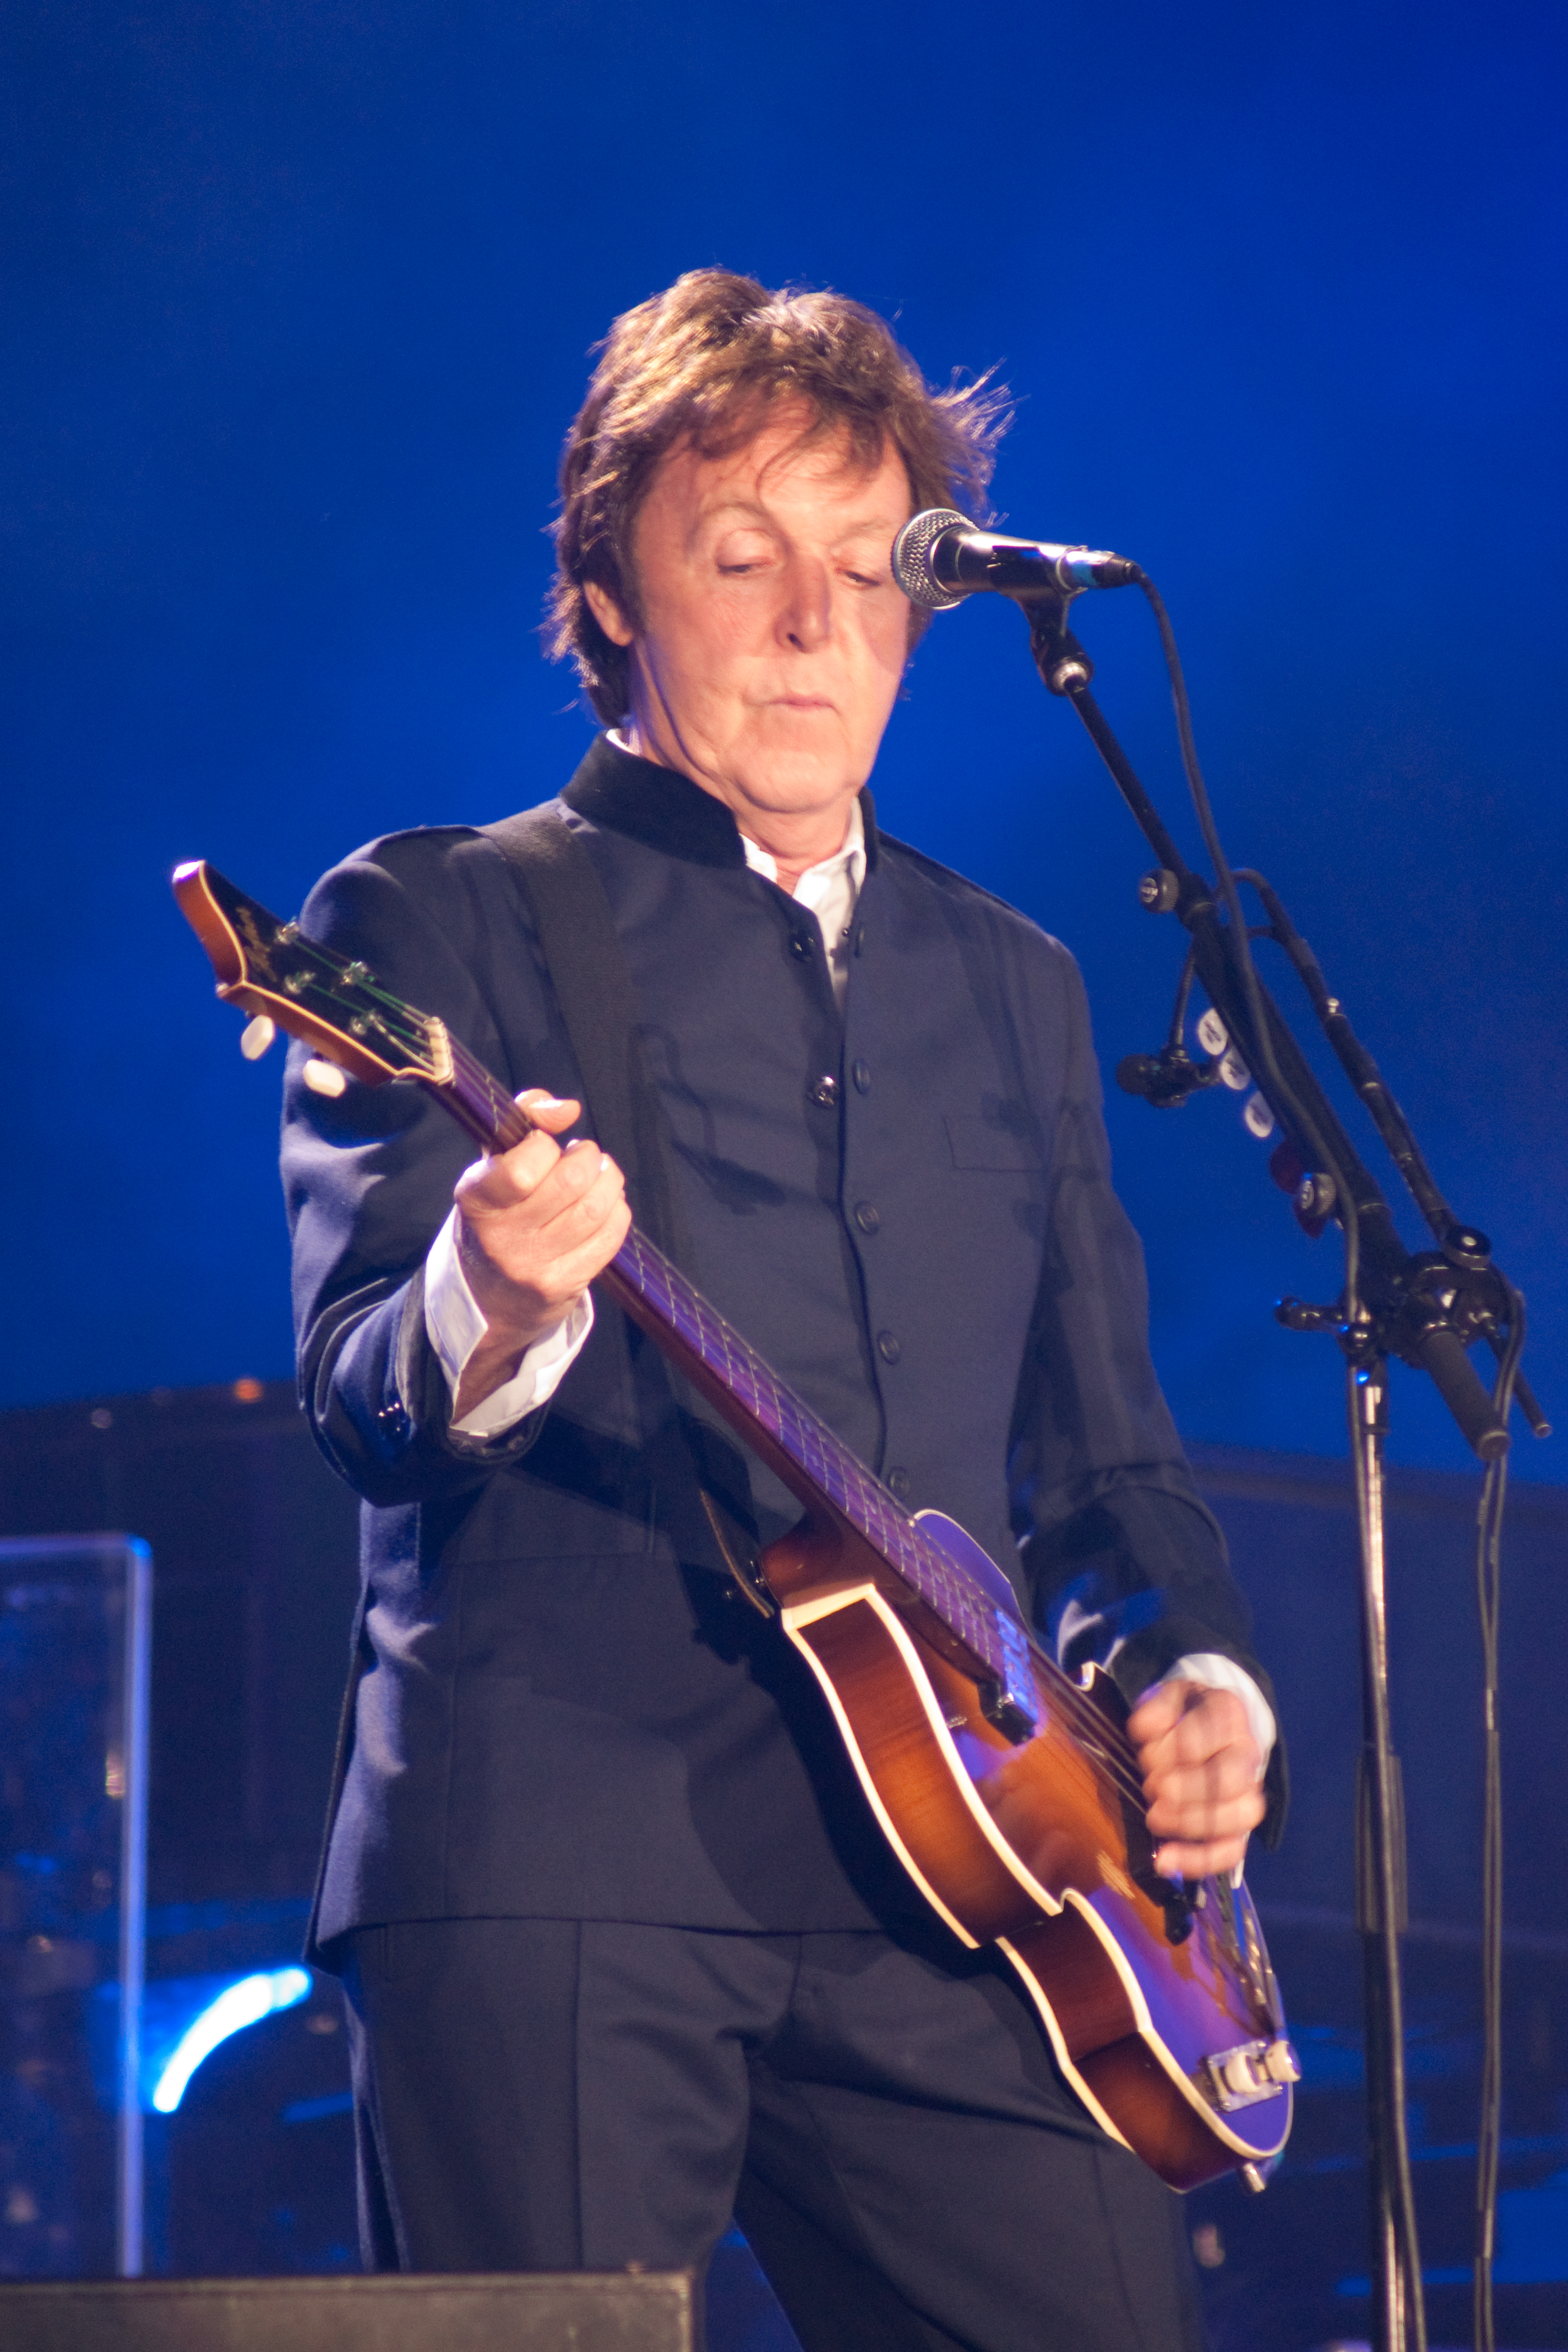 FilePaul McCartney Black Suit Live 2010